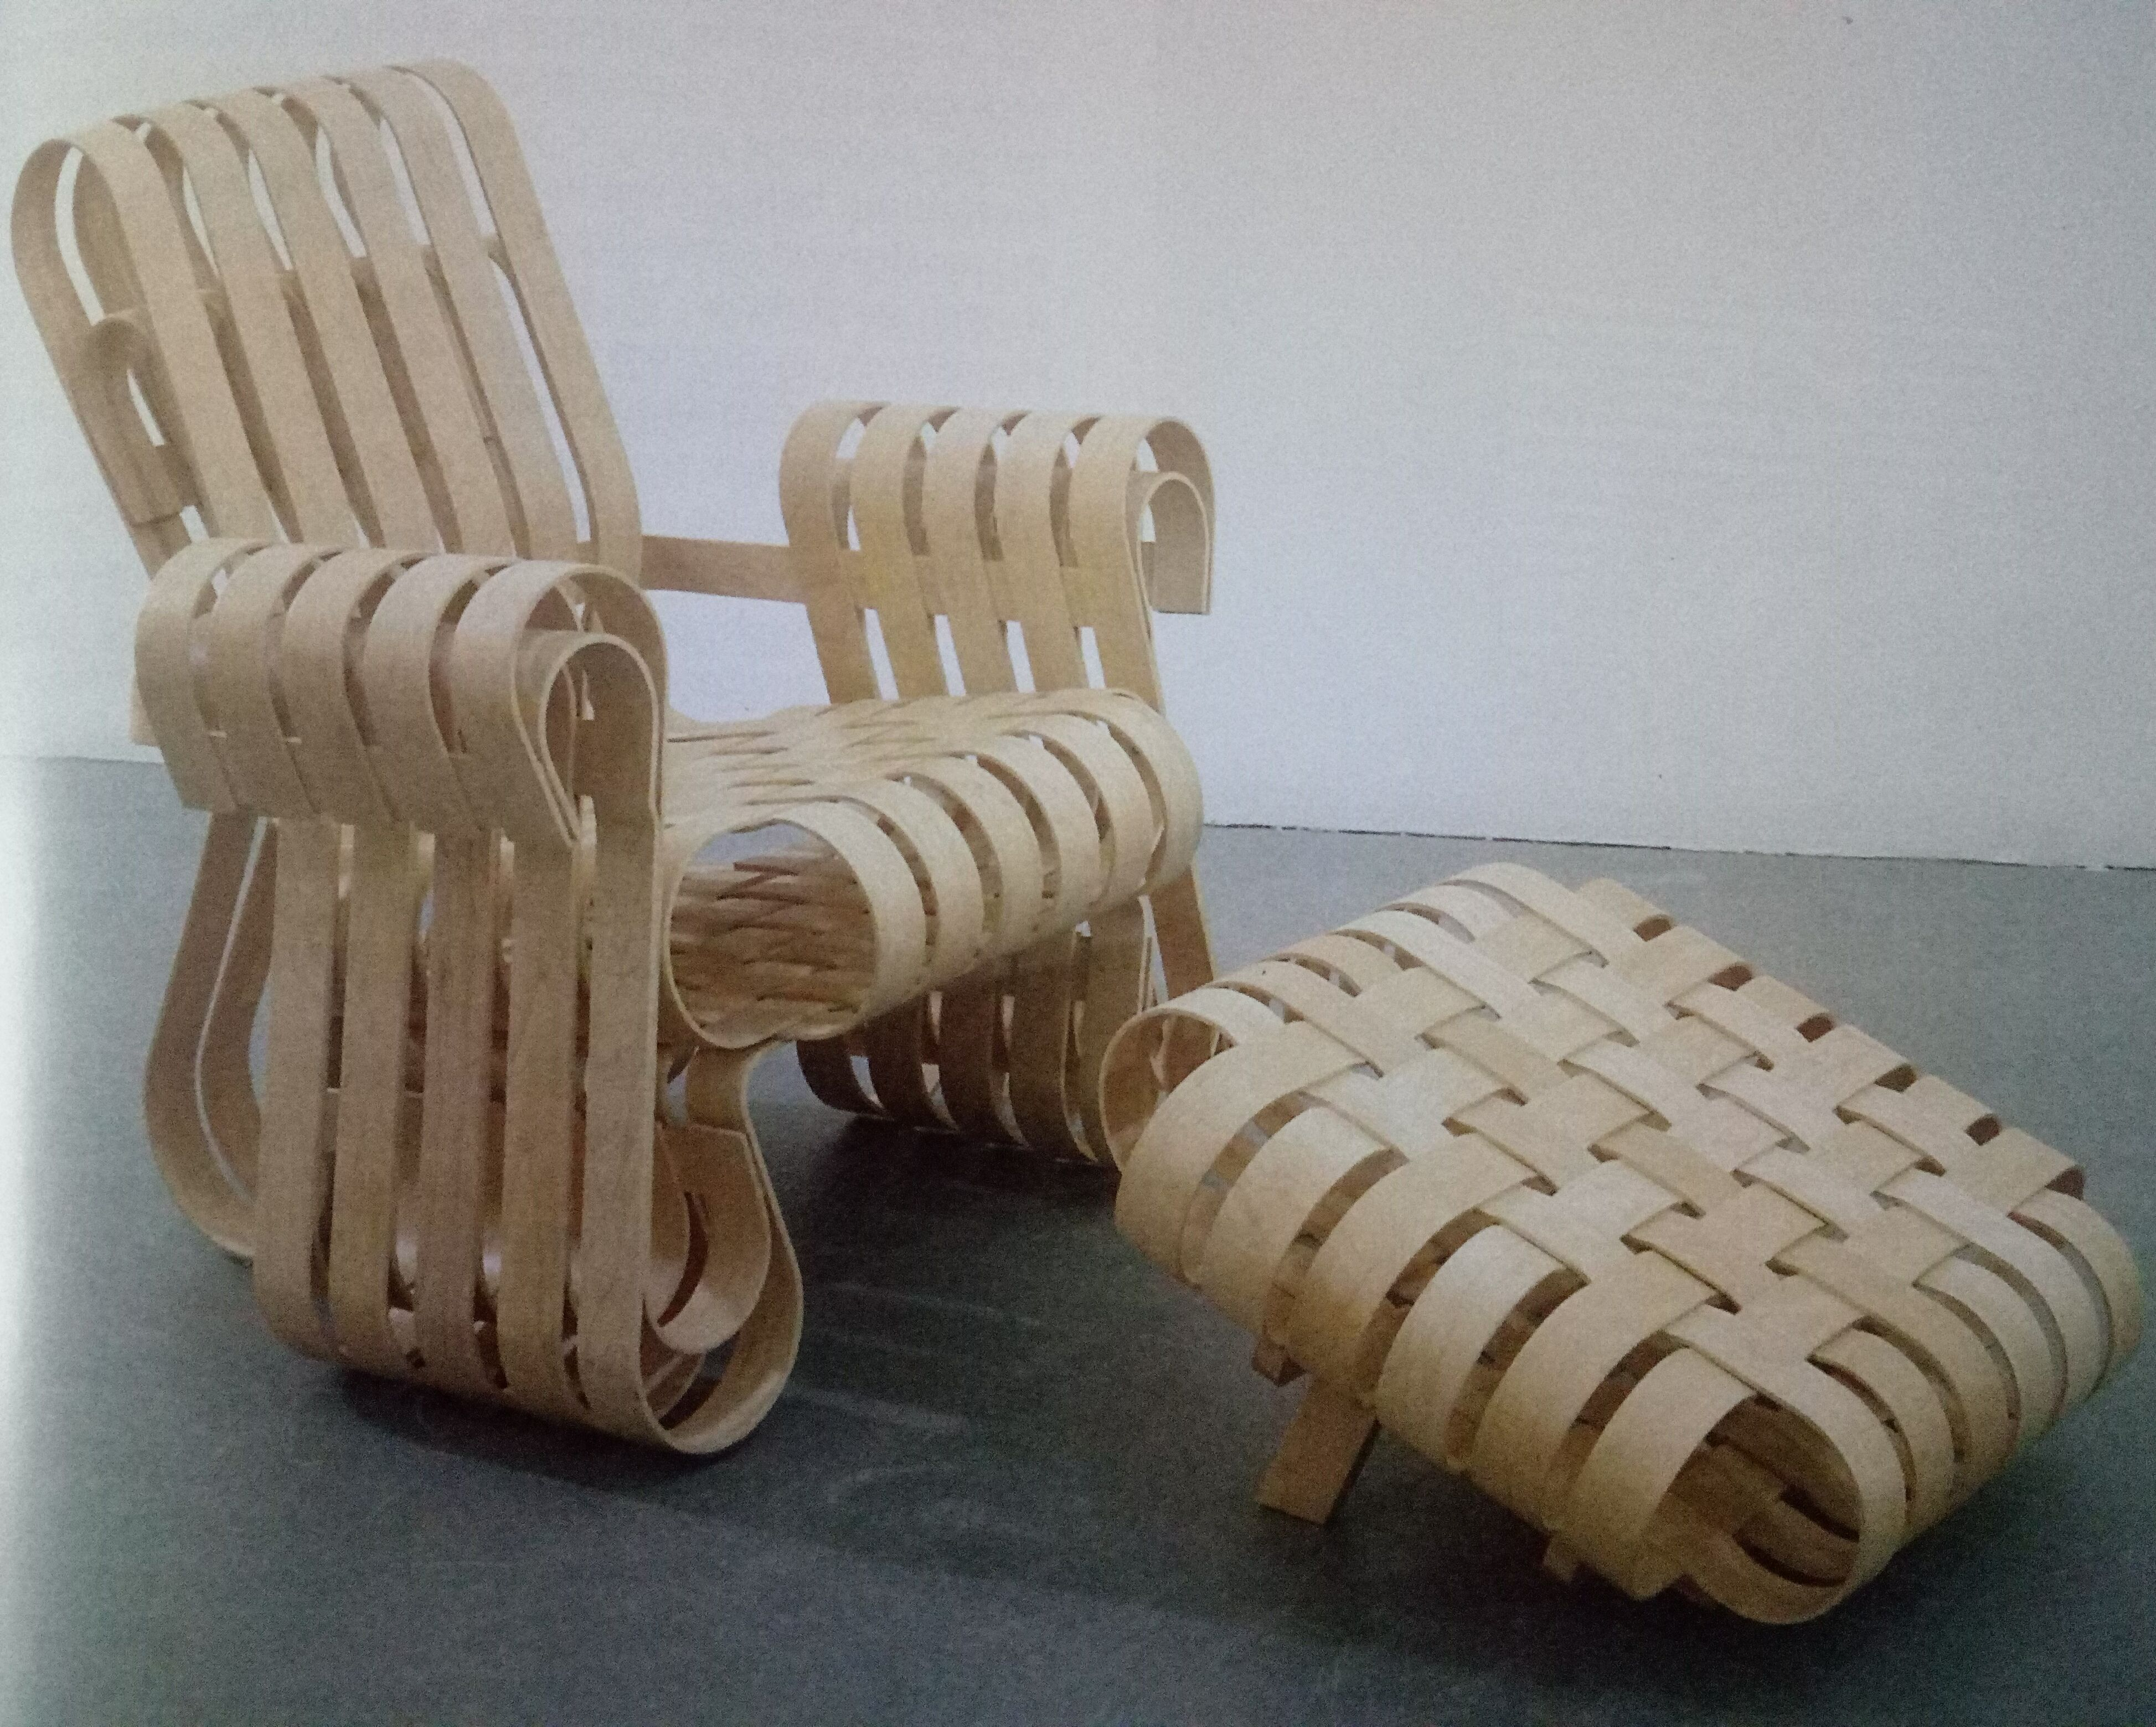 Frank Gehry, 1993 Floor chair, Home decor, Furniture